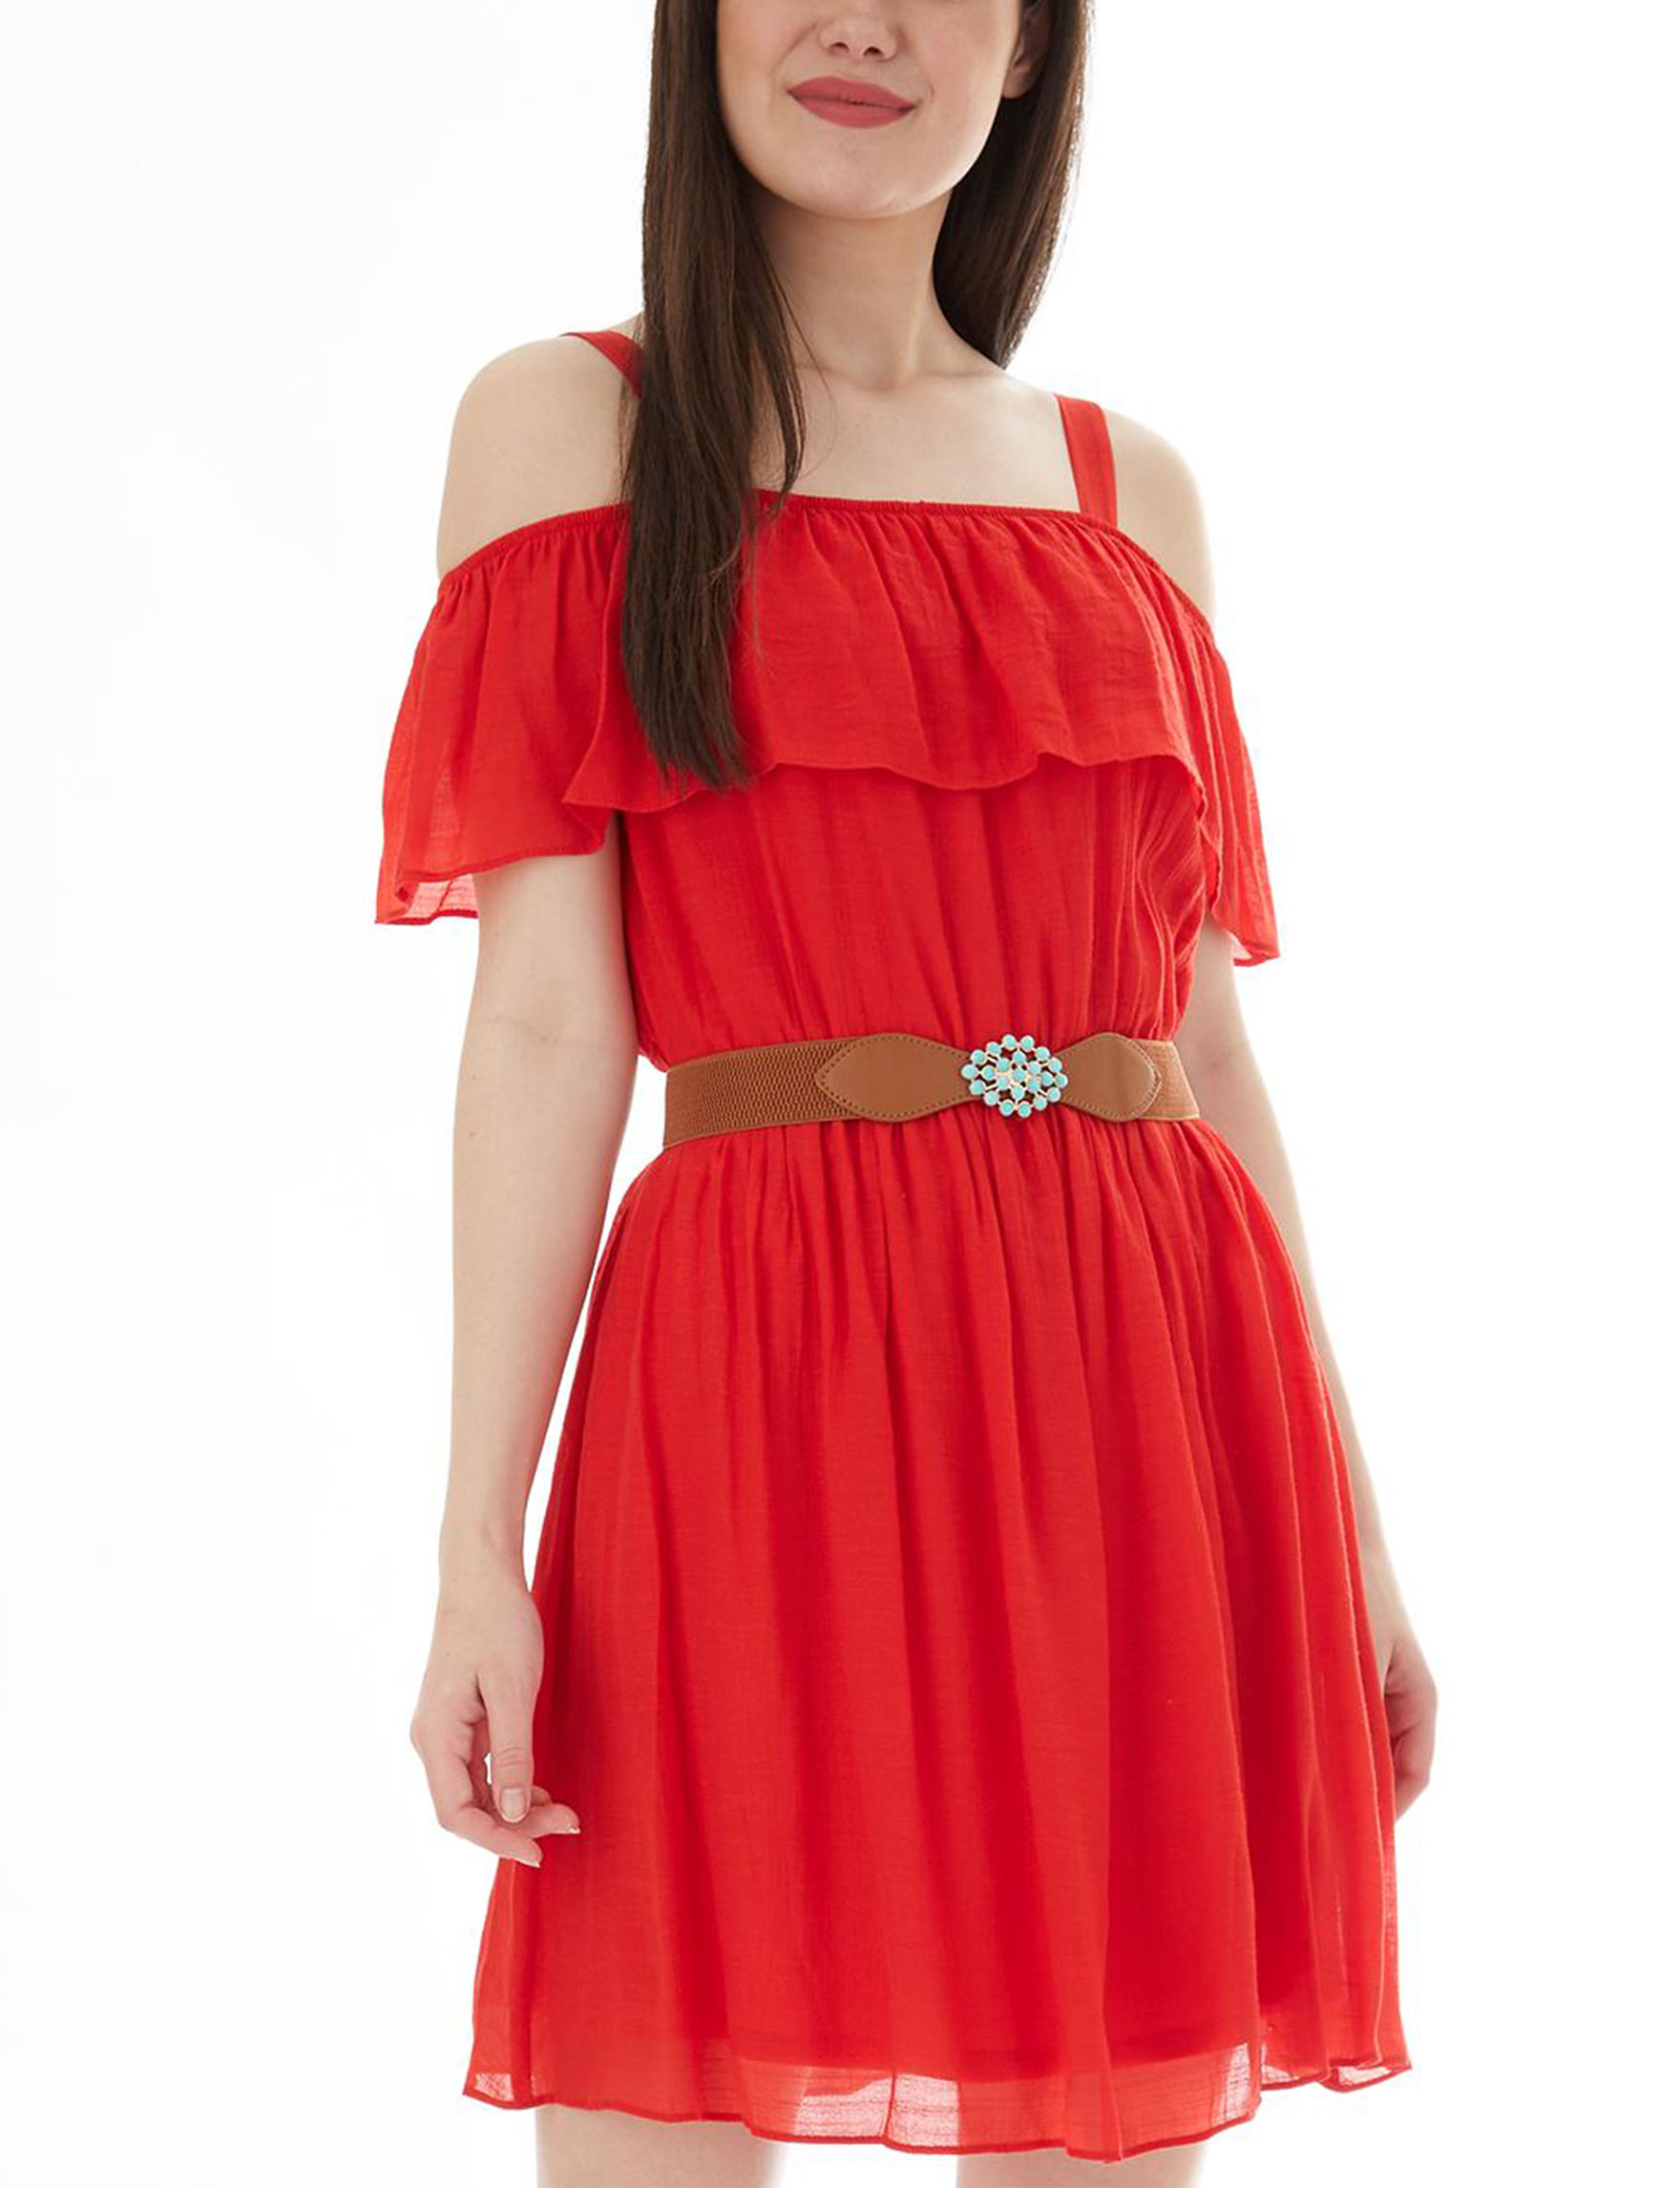 A. Byer Red Everyday & Casual Fit & Flare Dresses